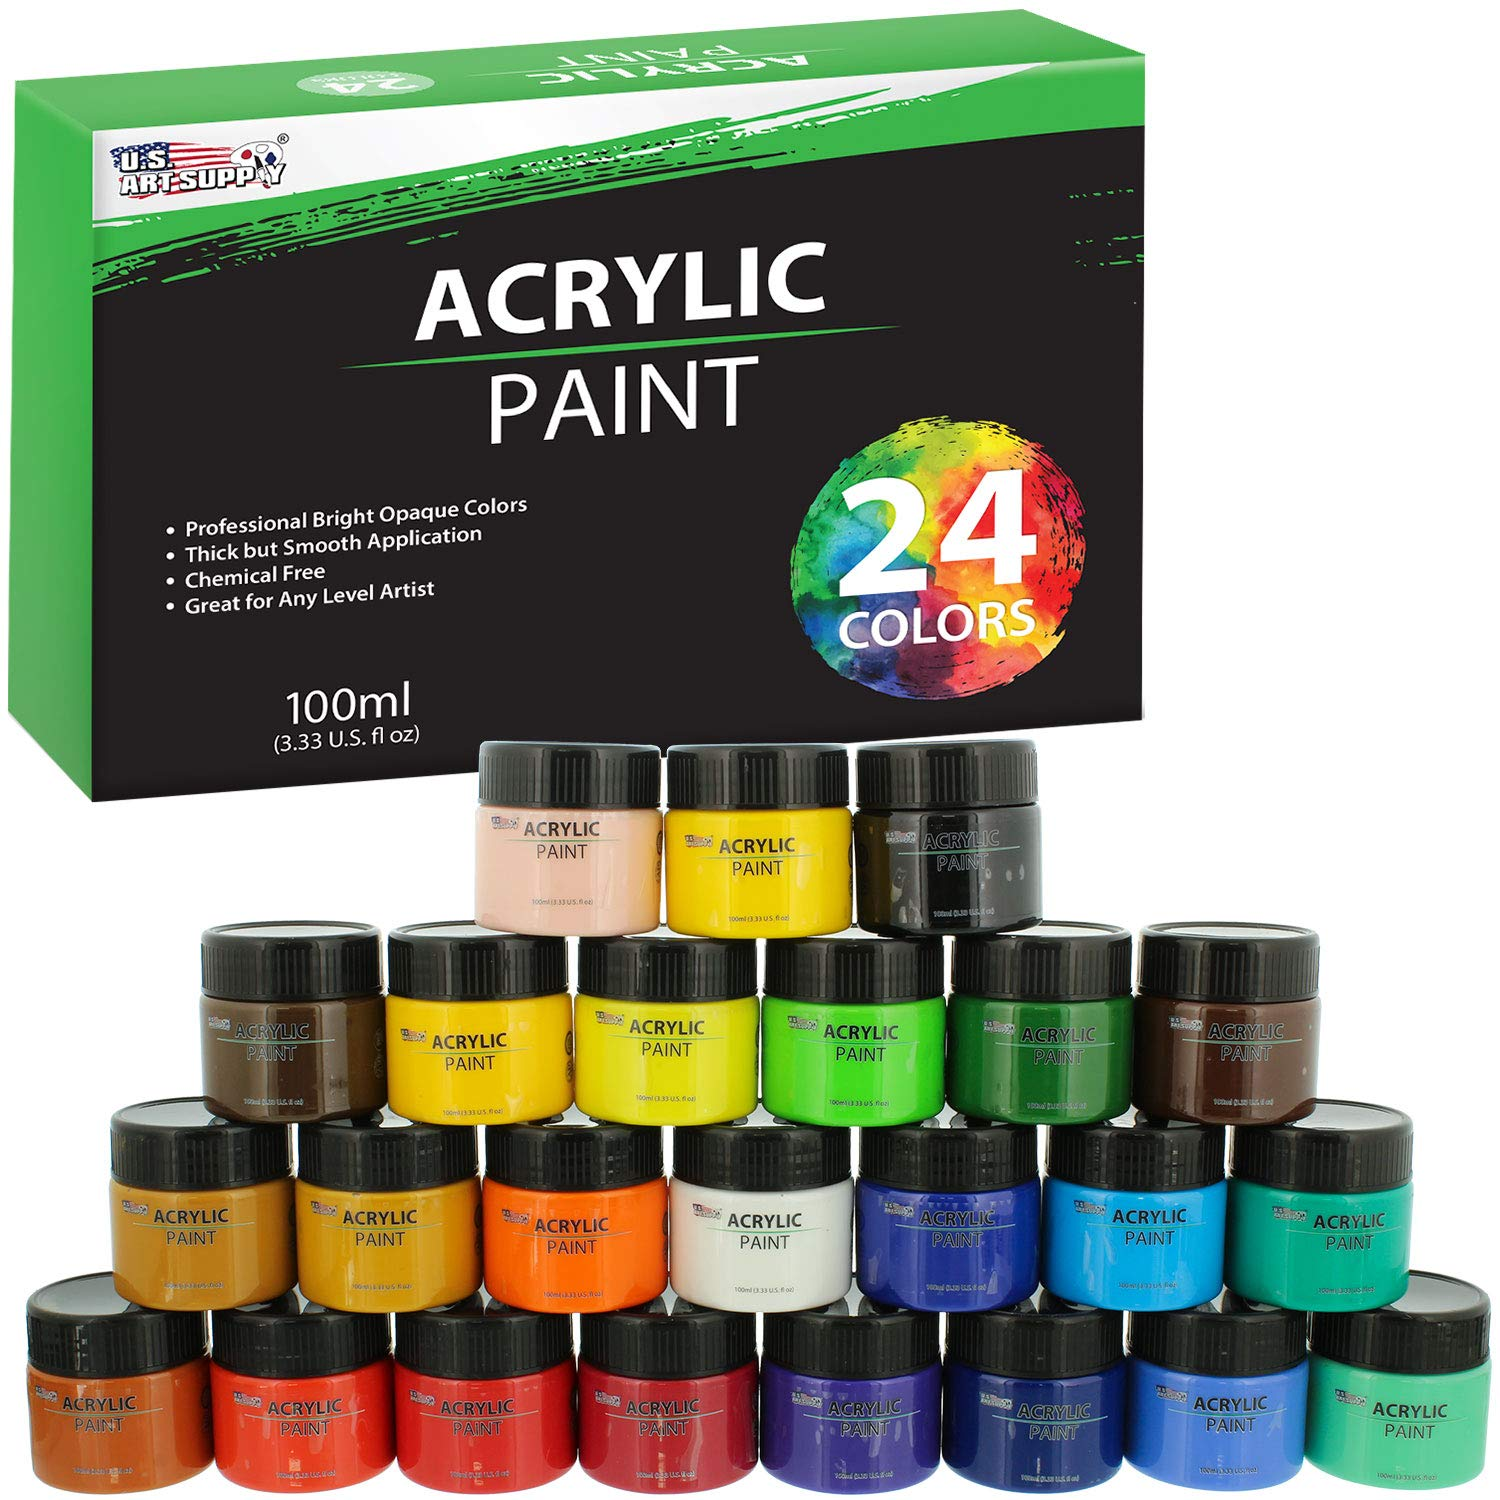 U.S. Art Supply 24 Color Acrylic Paint Jar Set 100ml Jars (3.33 fl oz) - Professional Artist Bright and Vivid Opaque Colors giving you the full range of color spectrum in one set by US Art Supply